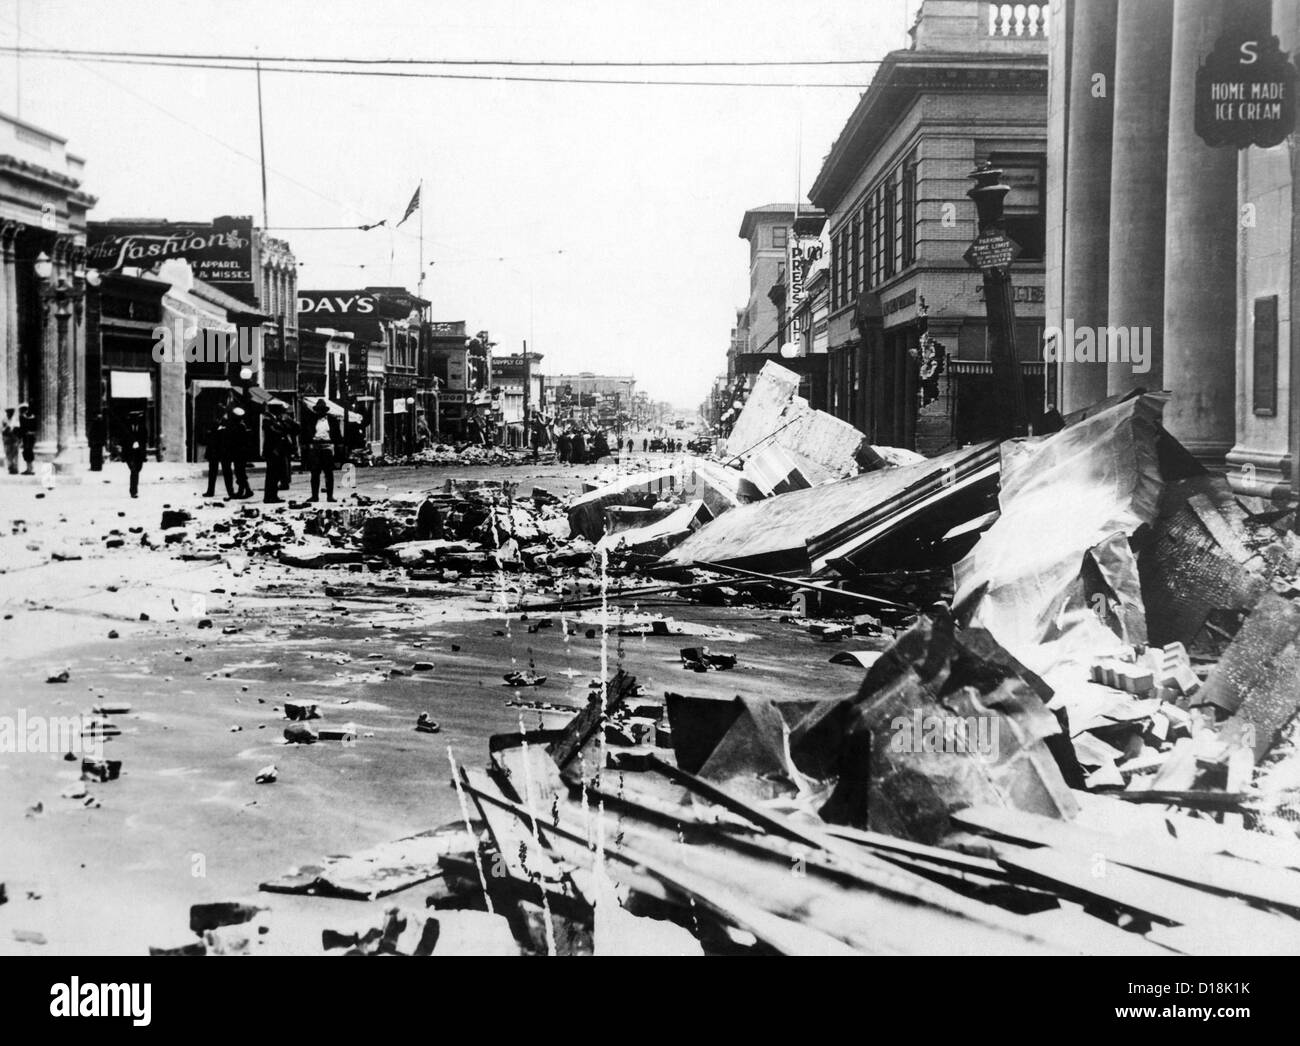 Santa Barbara earthquake of 1925 registered 6.8 on the Richter scale. Major damage occurred in the city and killed Stock Photo